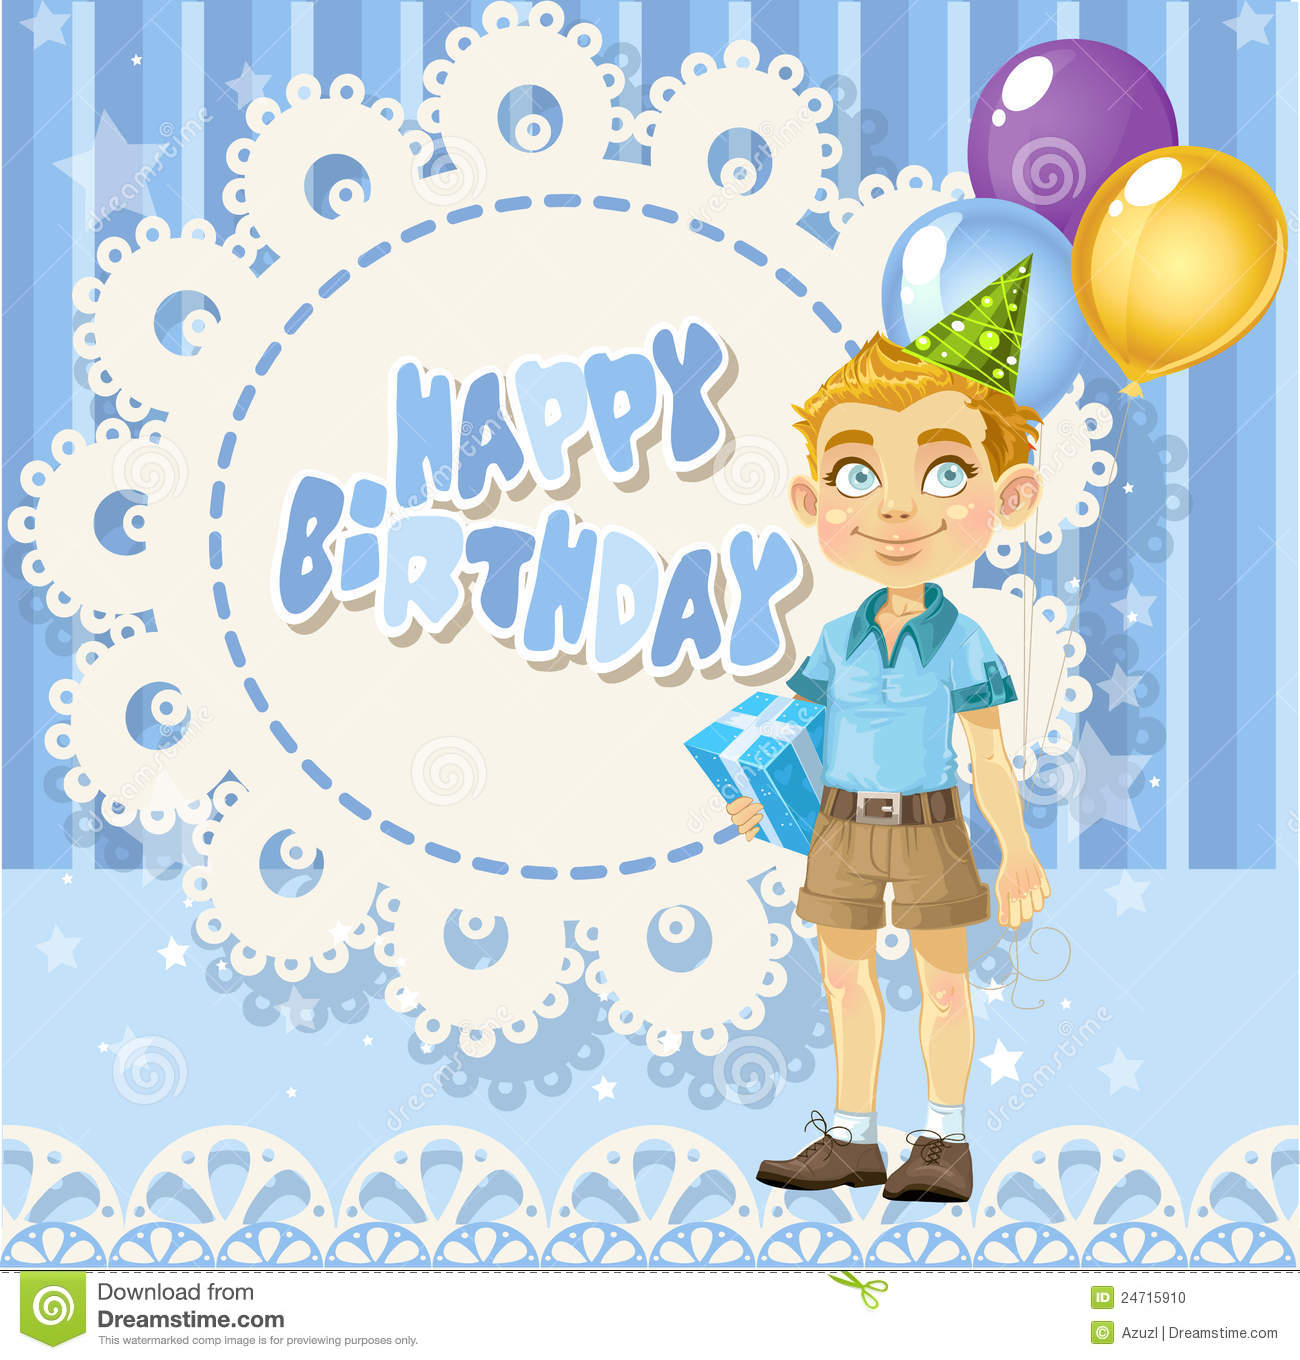 Happy Birthday Blue Openwork Card For Your Greetings To Cute Boy